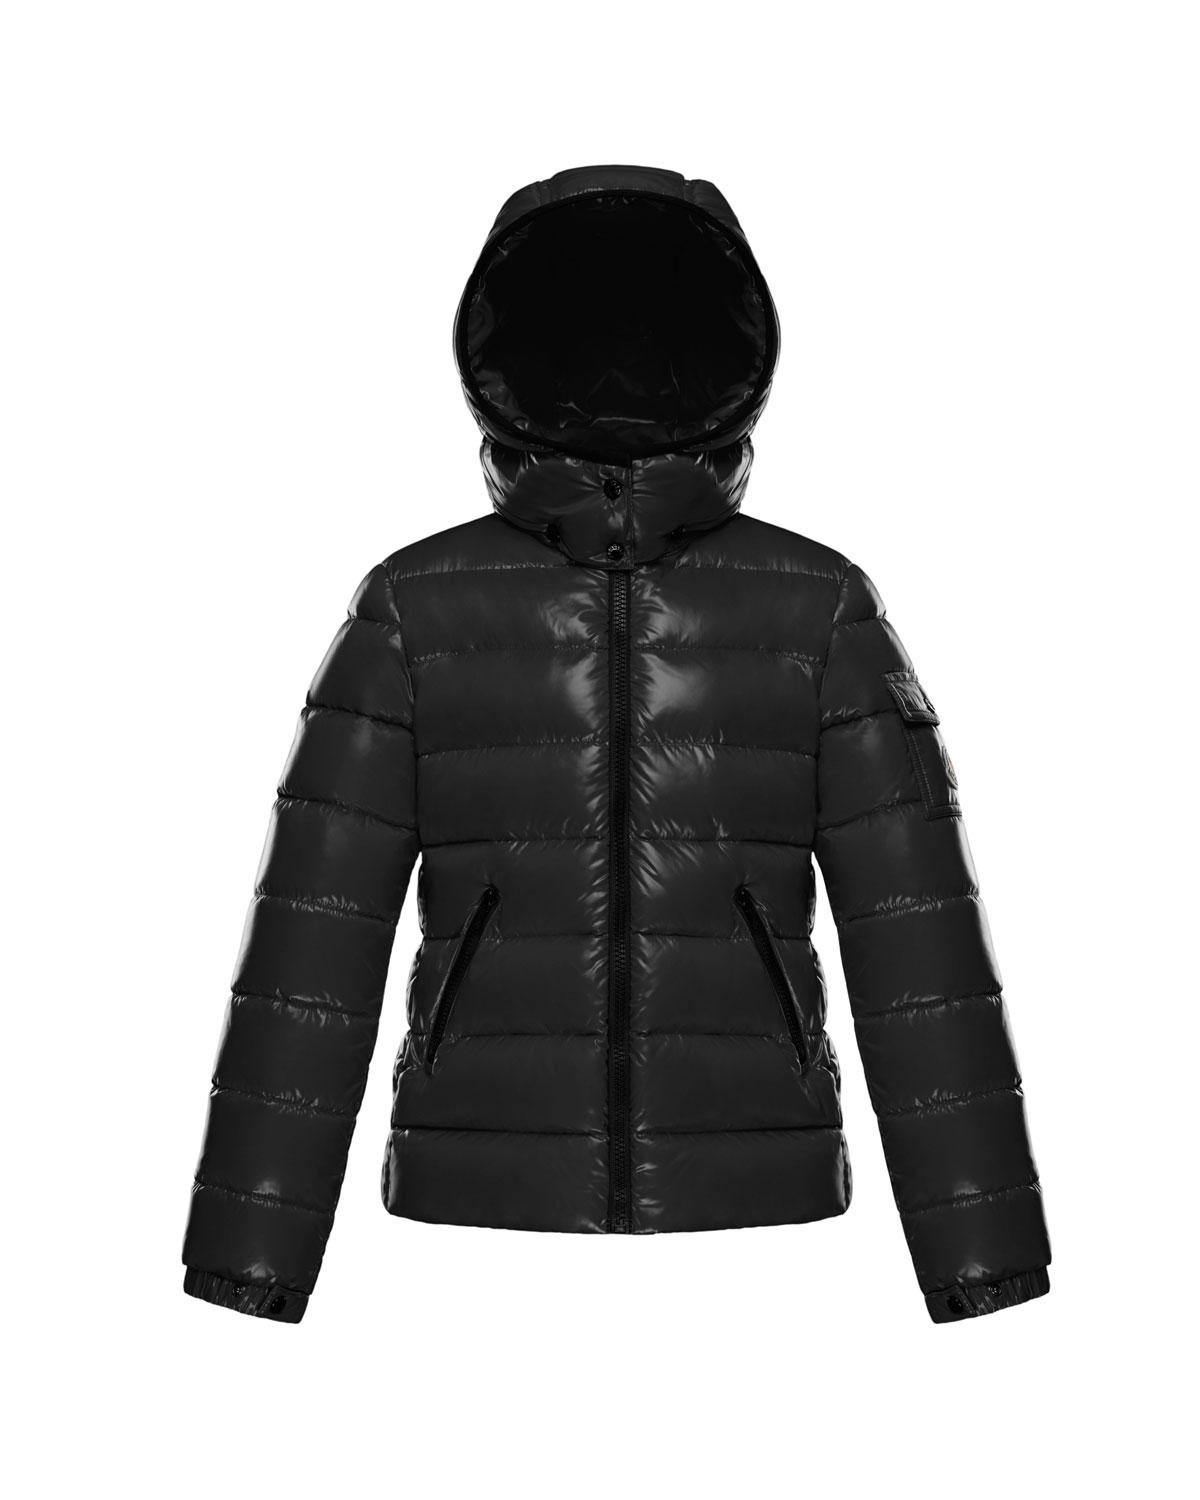 75865070f Bady Fitted Puffer Jacket, Black, Size 4-6